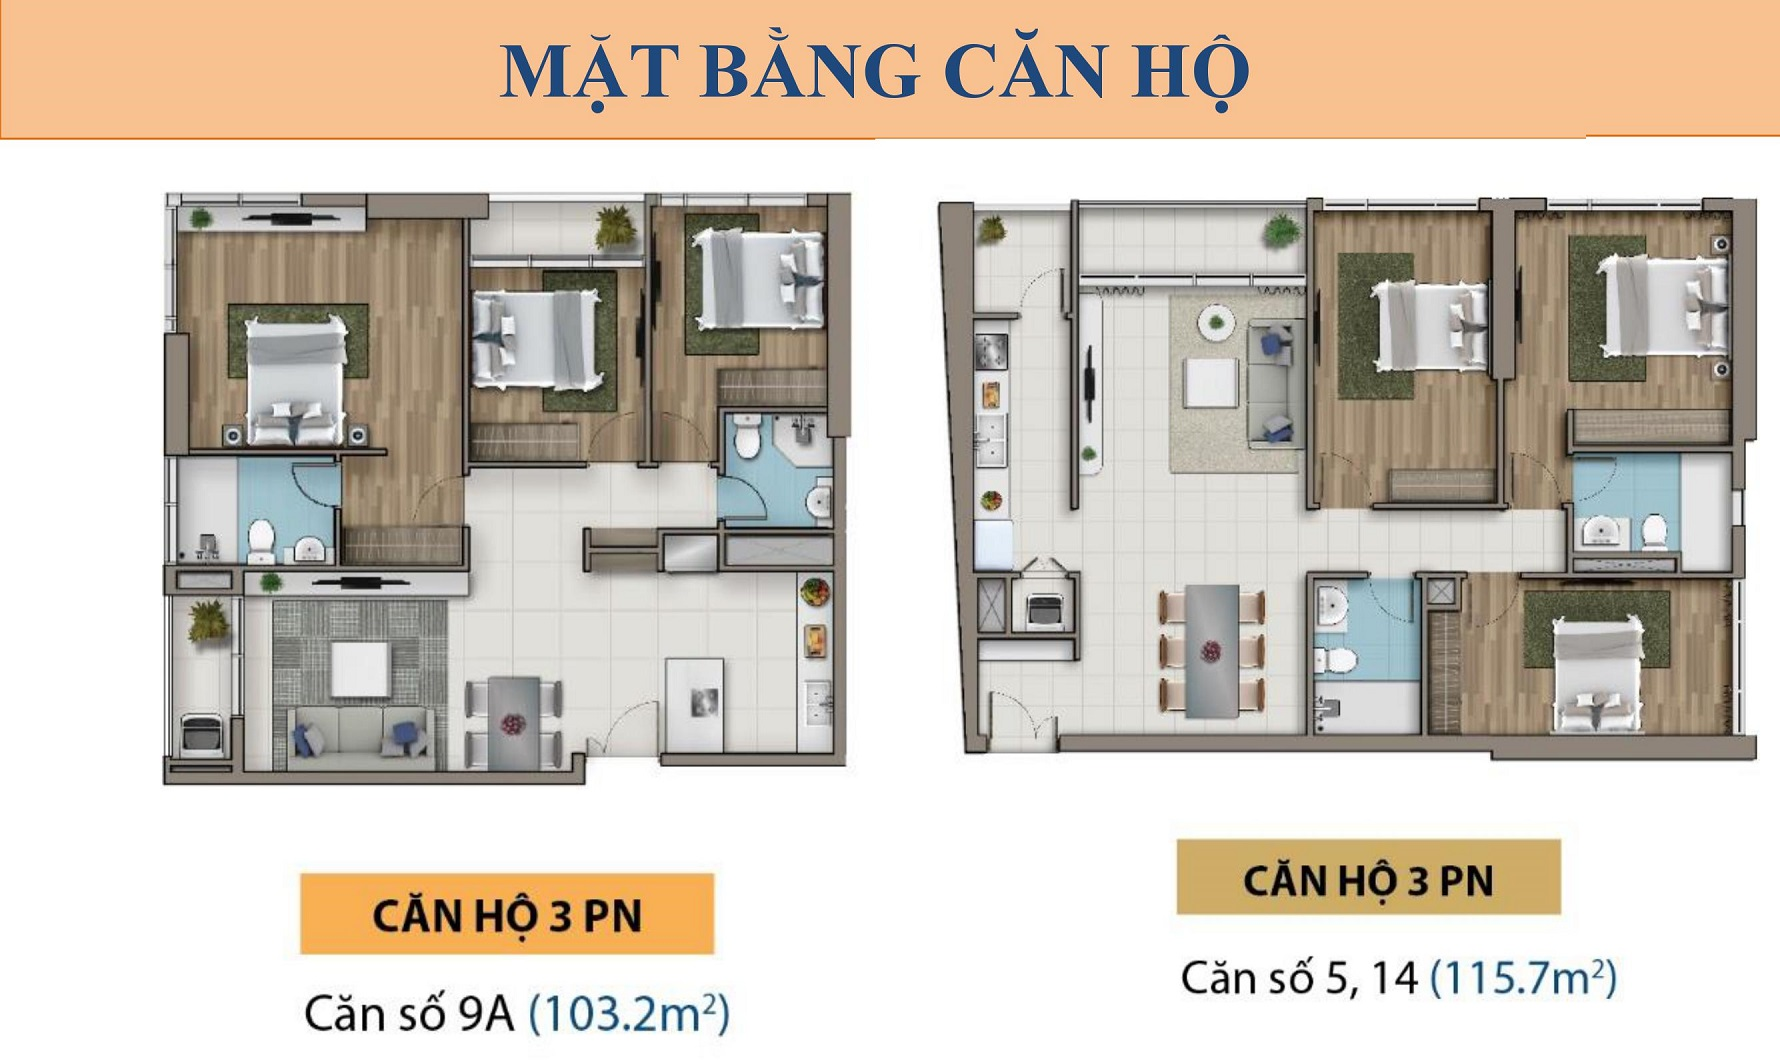 mat-bang-can-ho-saigon-royal-2